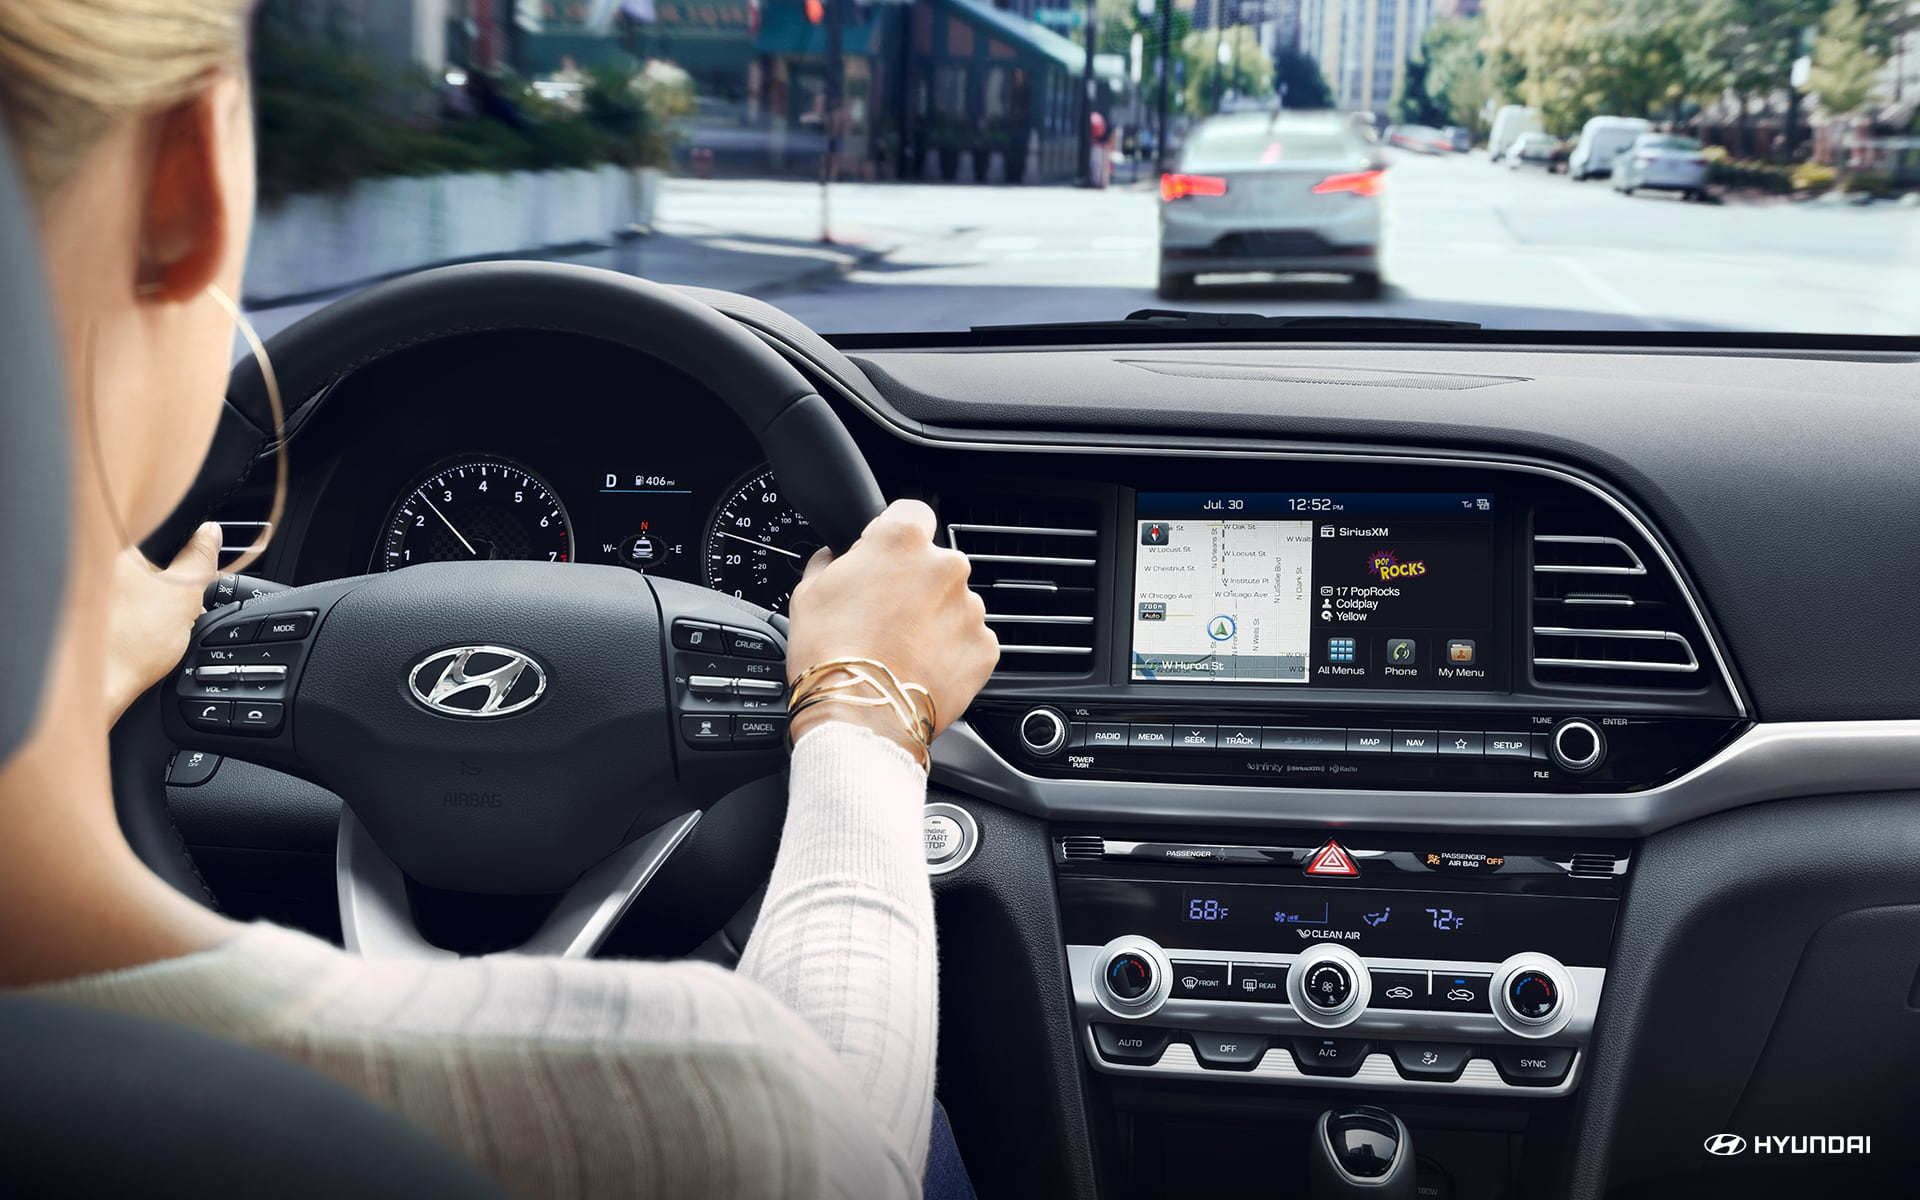 2019 Hyundai Elantra Safety Features